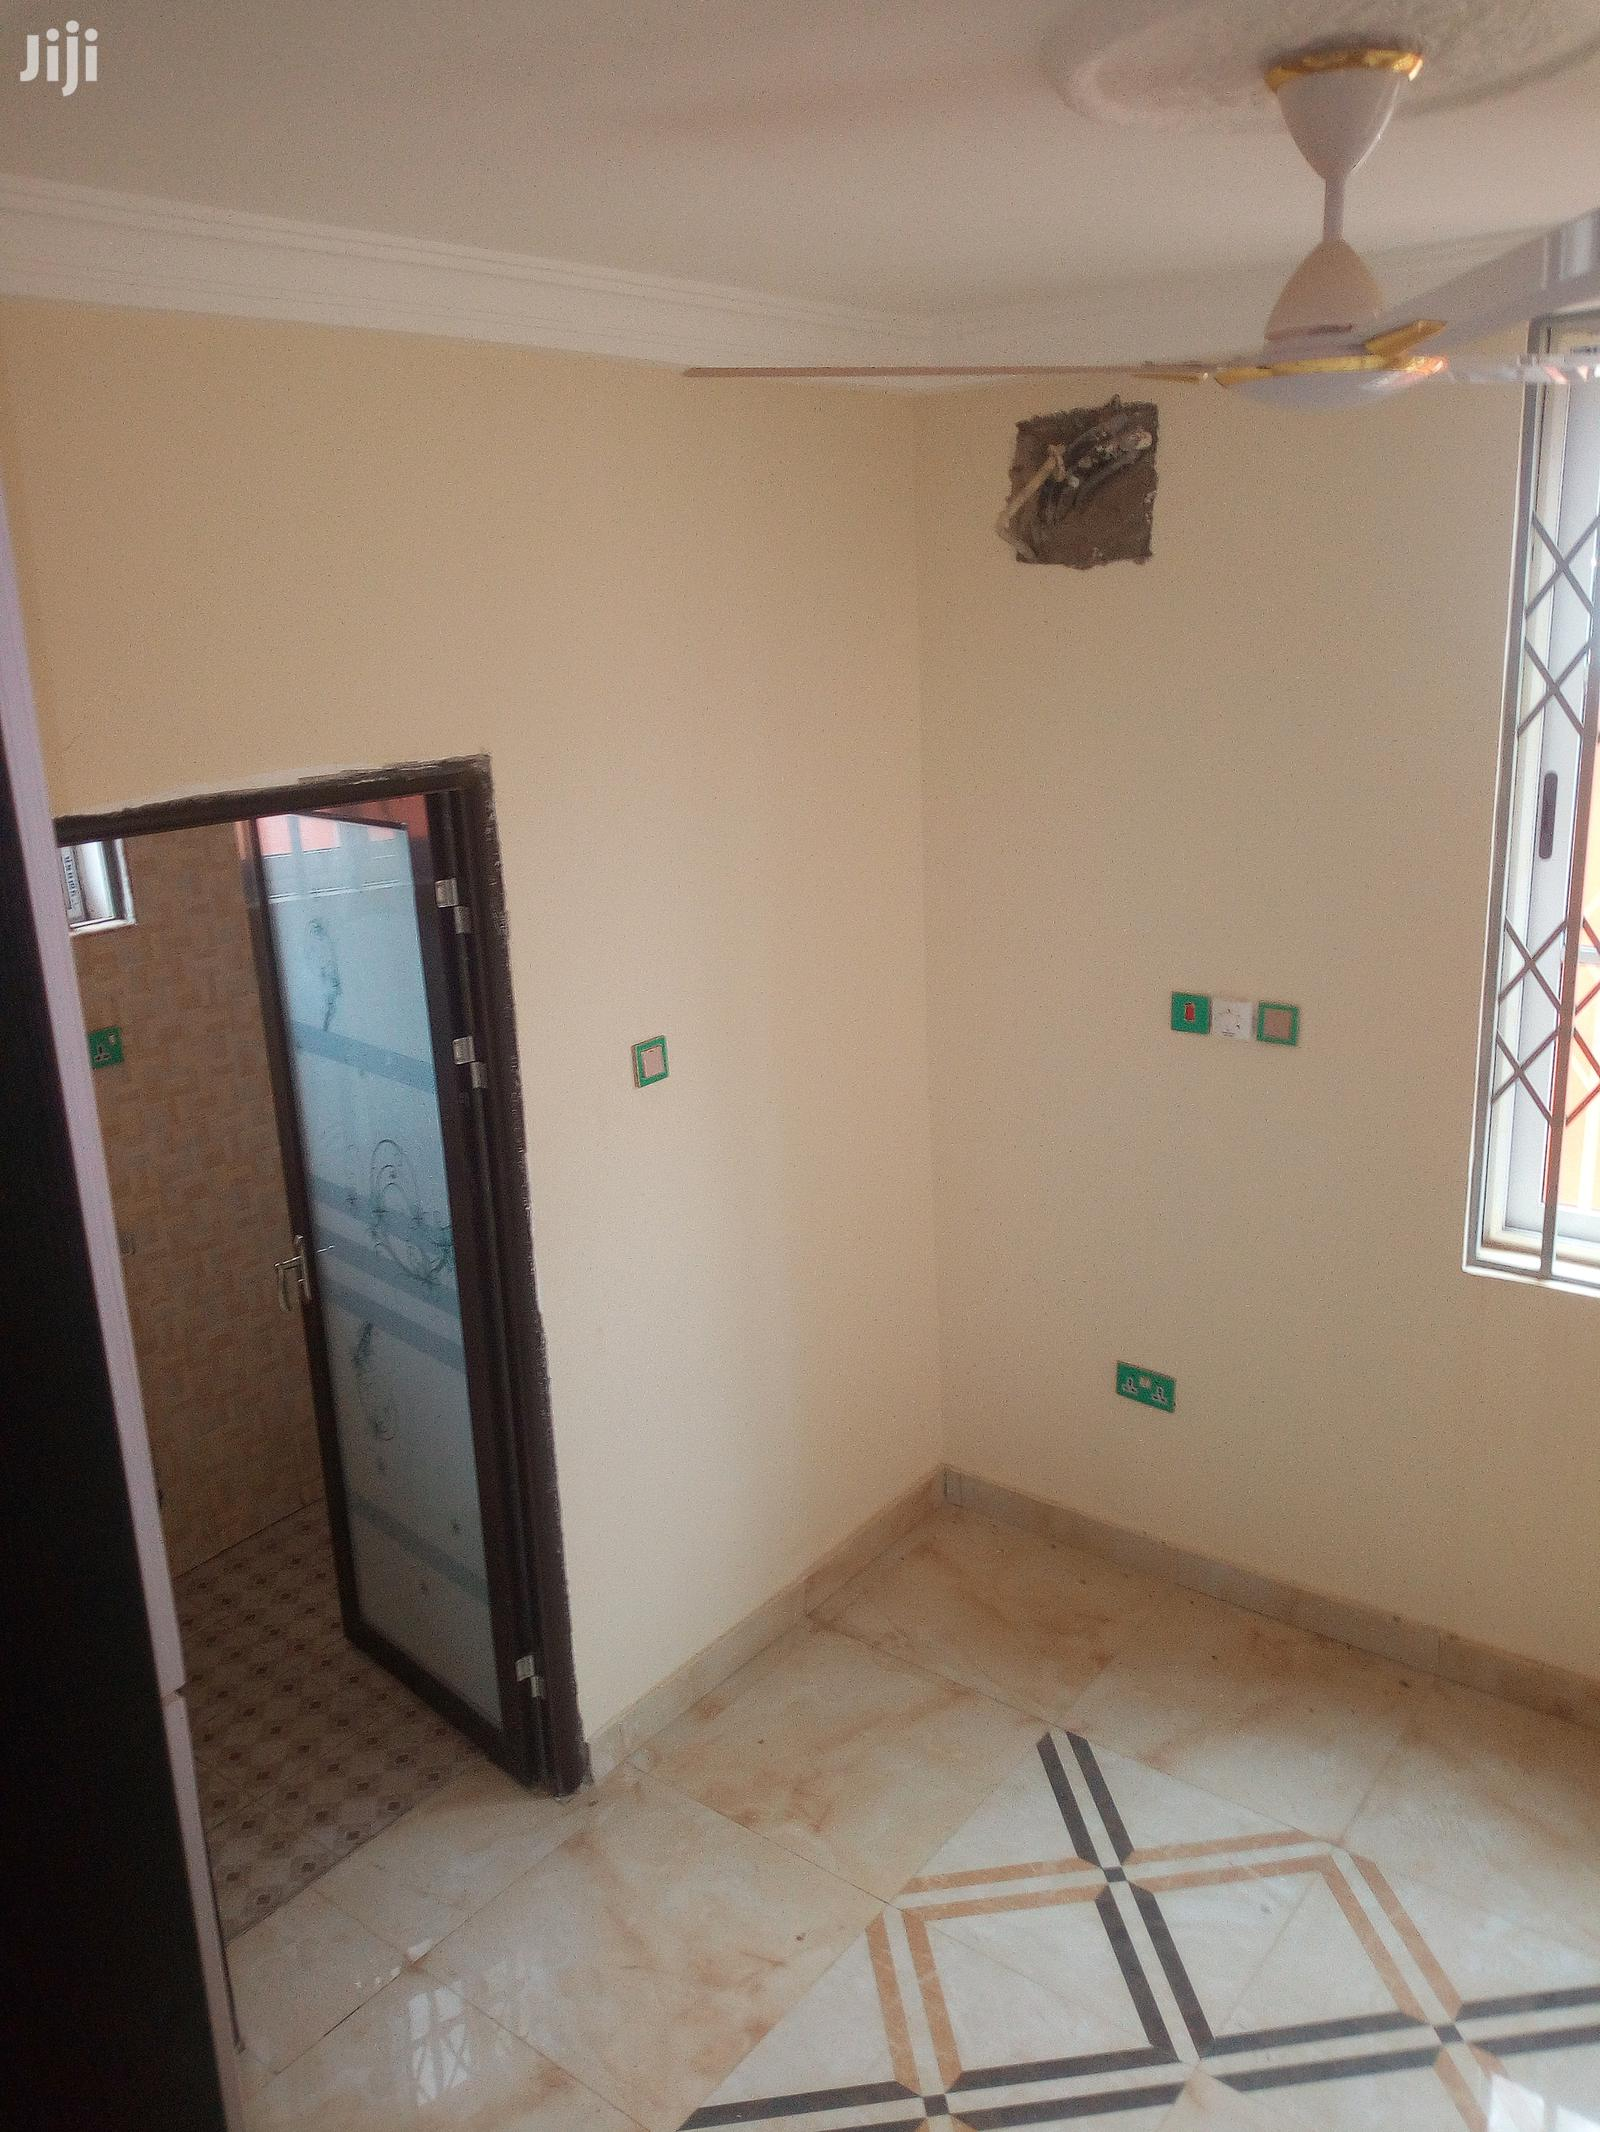 Executive Storey Mansion for RENT/SALE | Houses & Apartments For Rent for sale in East Legon, Greater Accra, Ghana